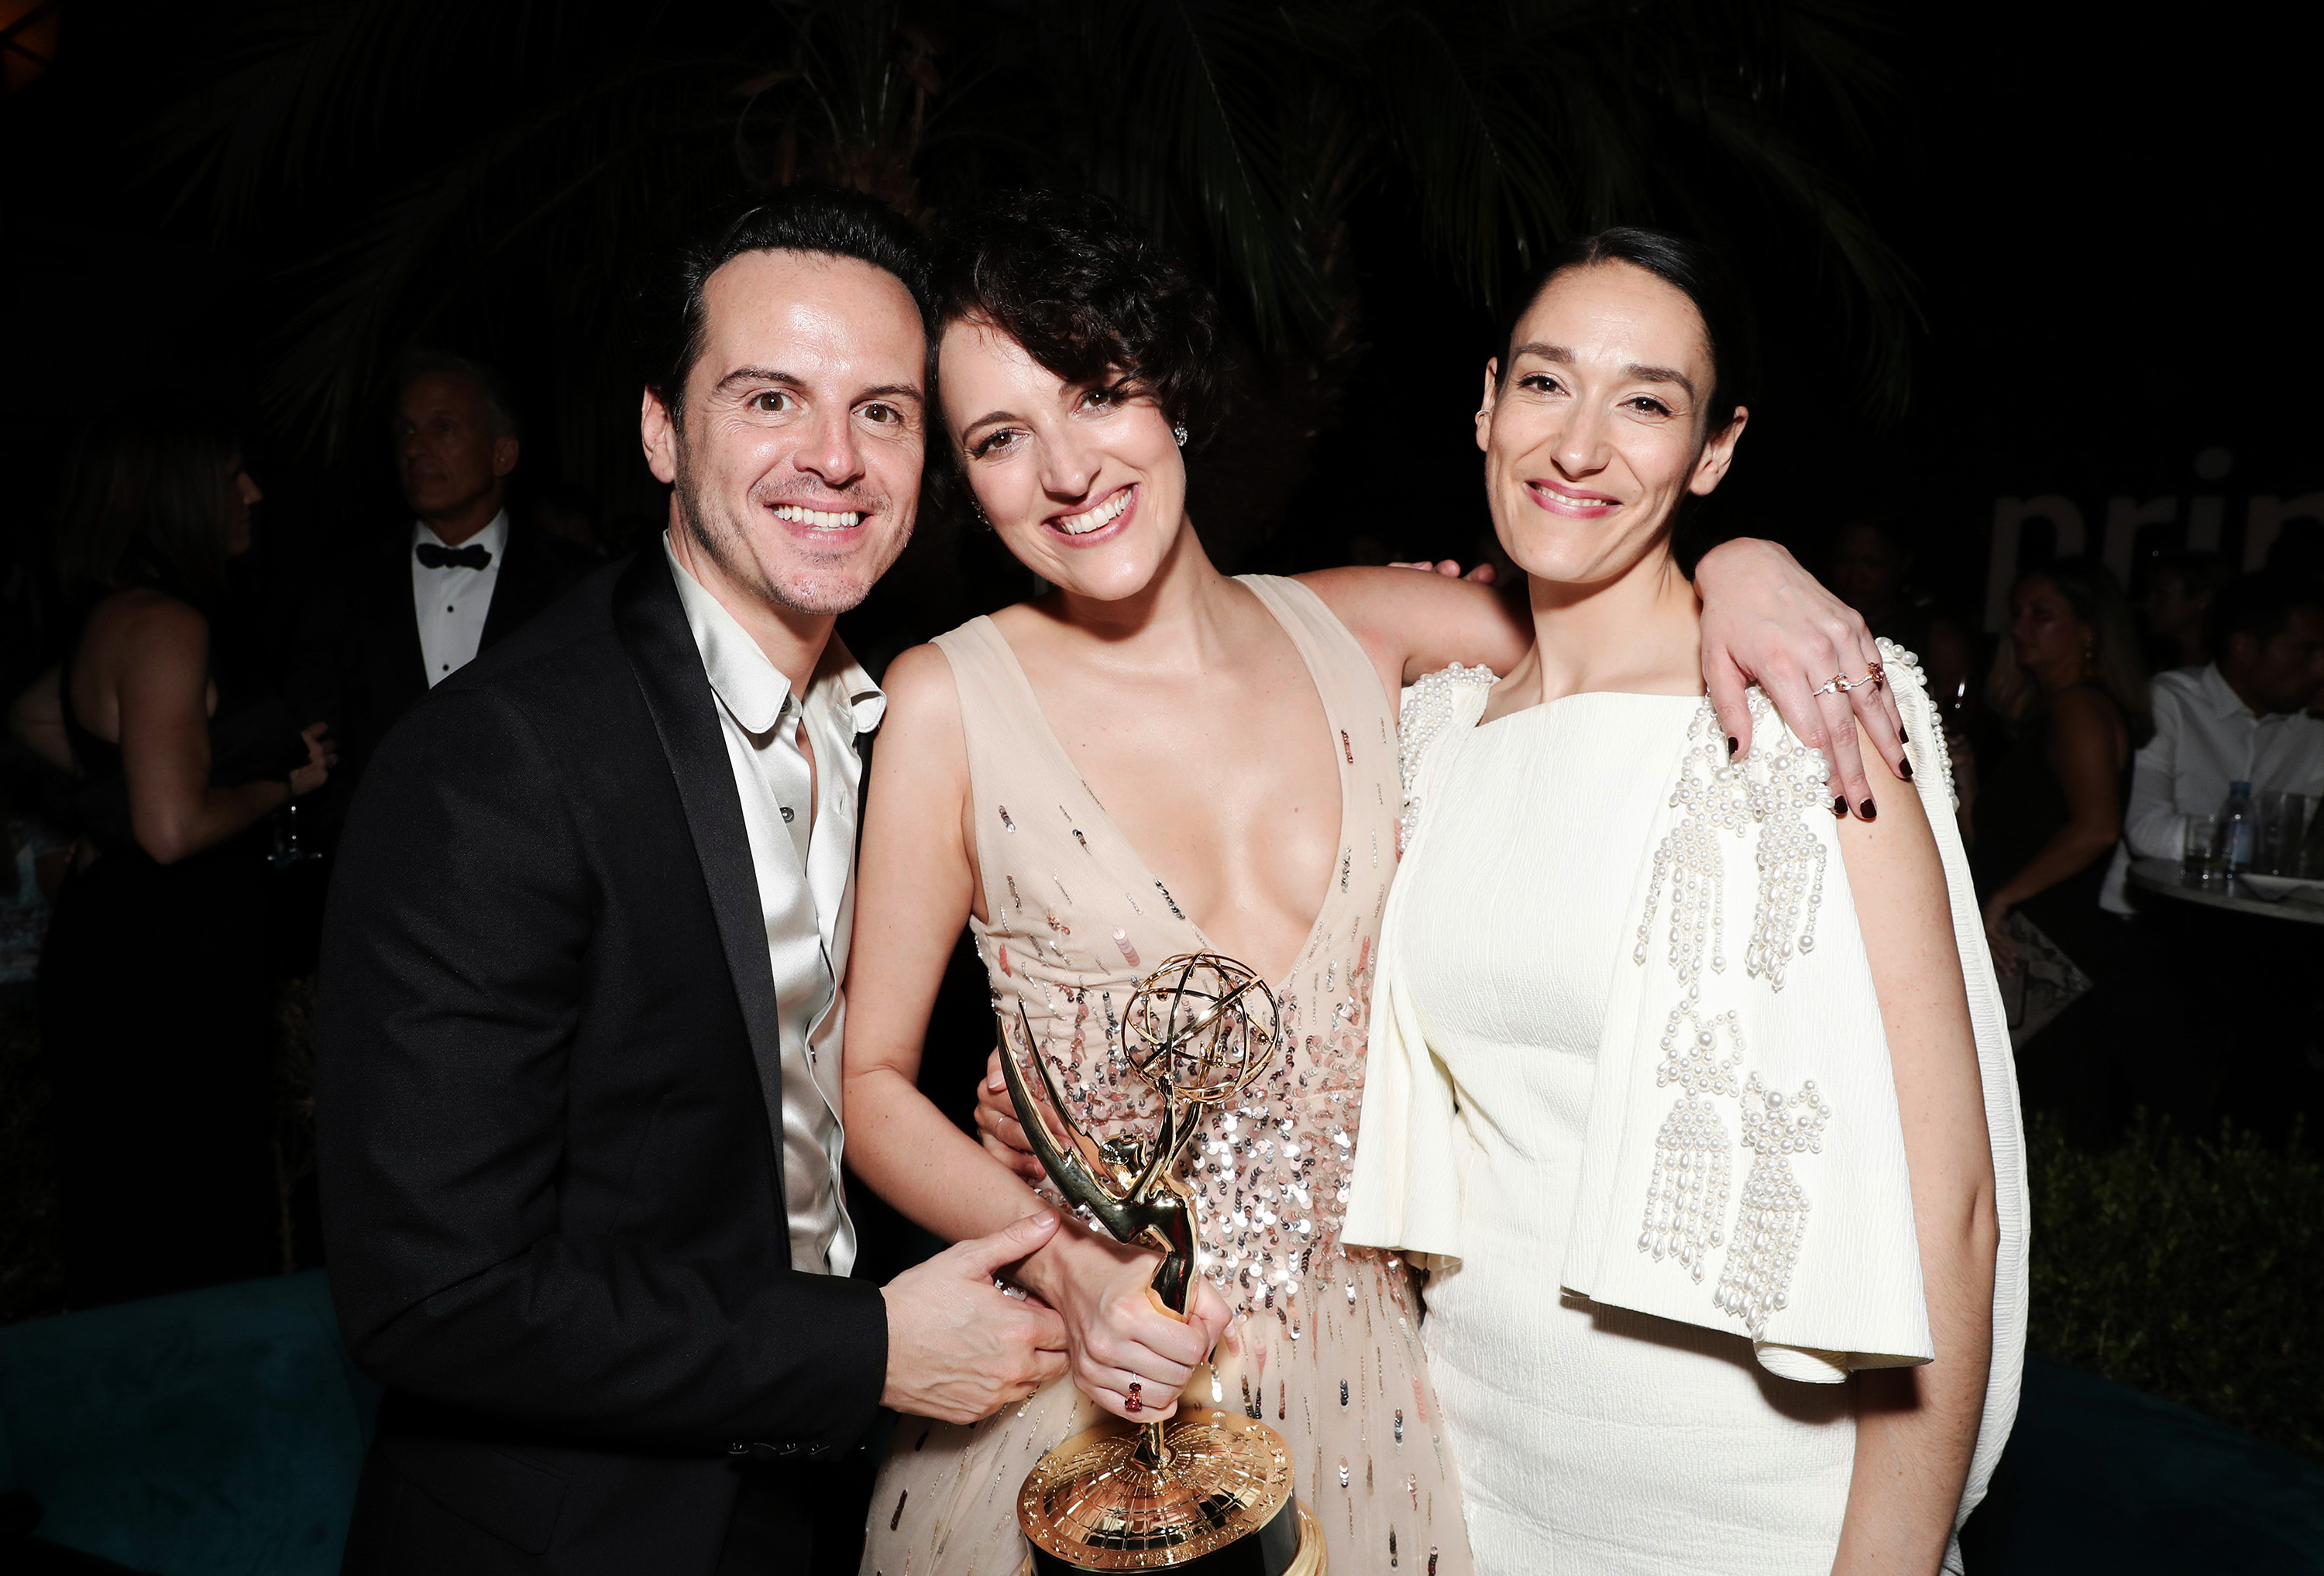 Andrew Scott, Phoebe Waller-Bridge and Sian Clifford71st Primetime Emmy Awards, Amazon After Party, Inside, Chateau Marmont, Los Angeles, USA - 22 Sep 2019